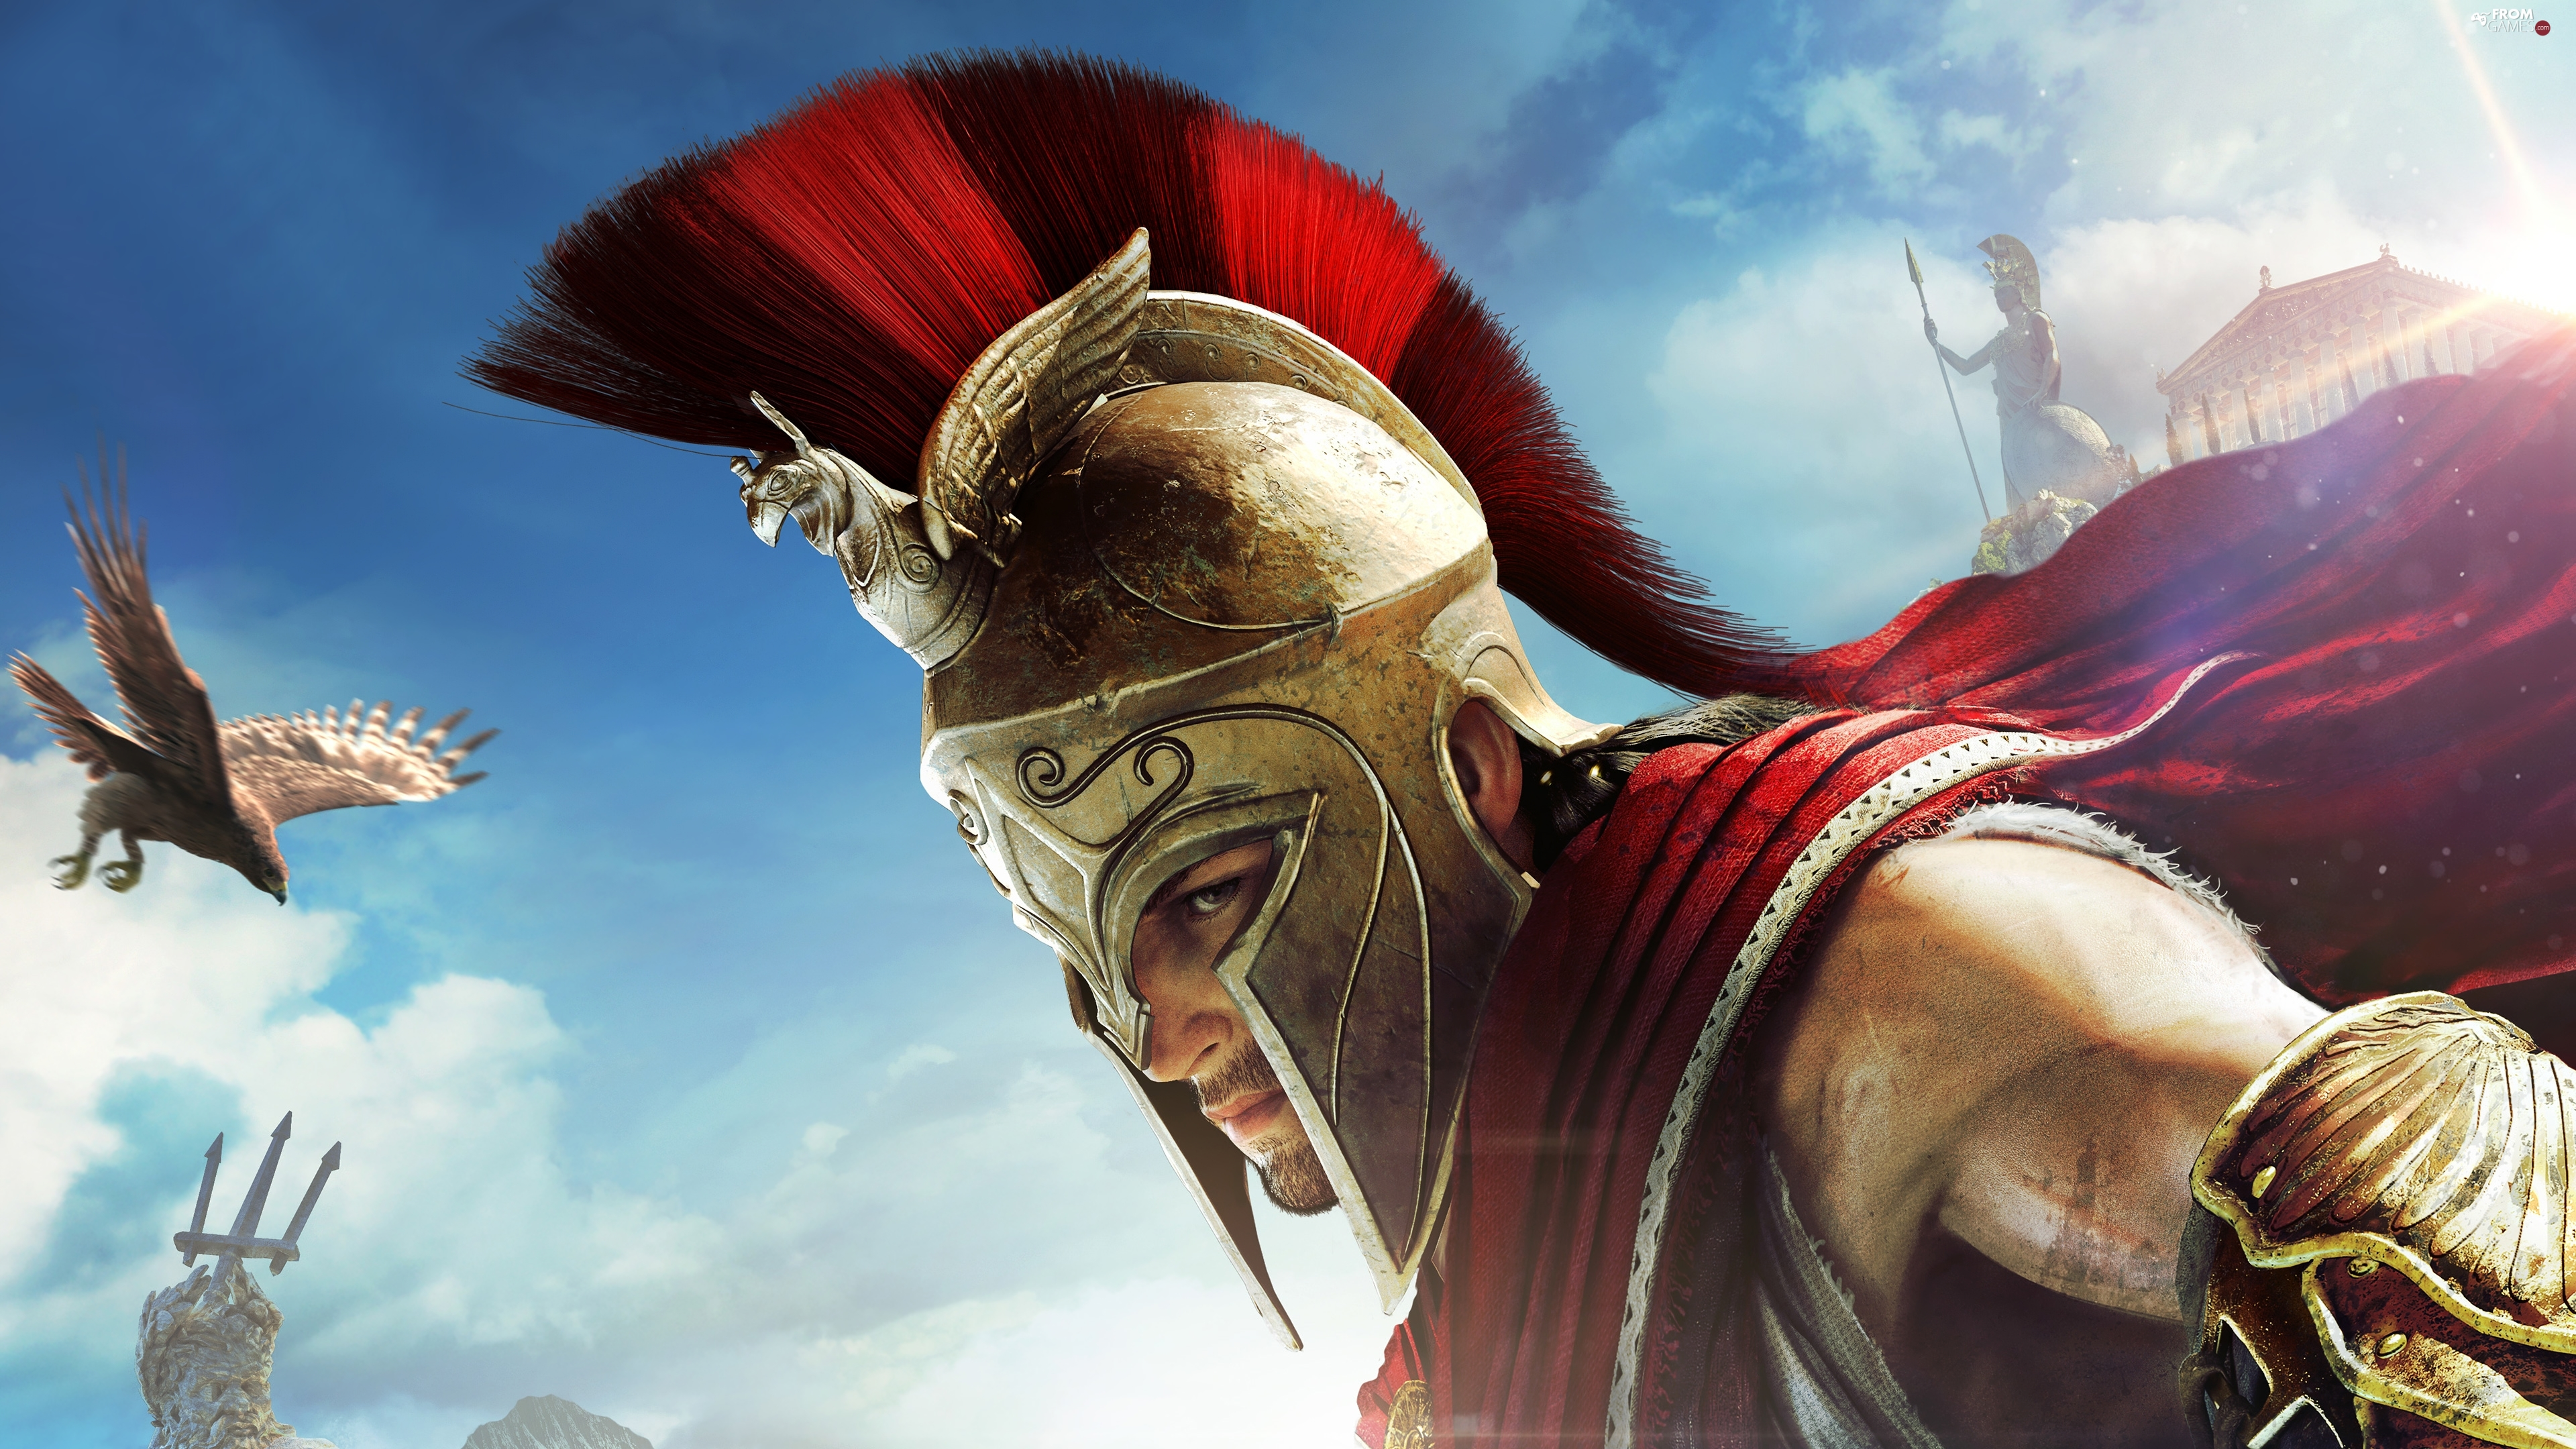 Game Alexios Helmet Assassins Creed Odyssey From Games